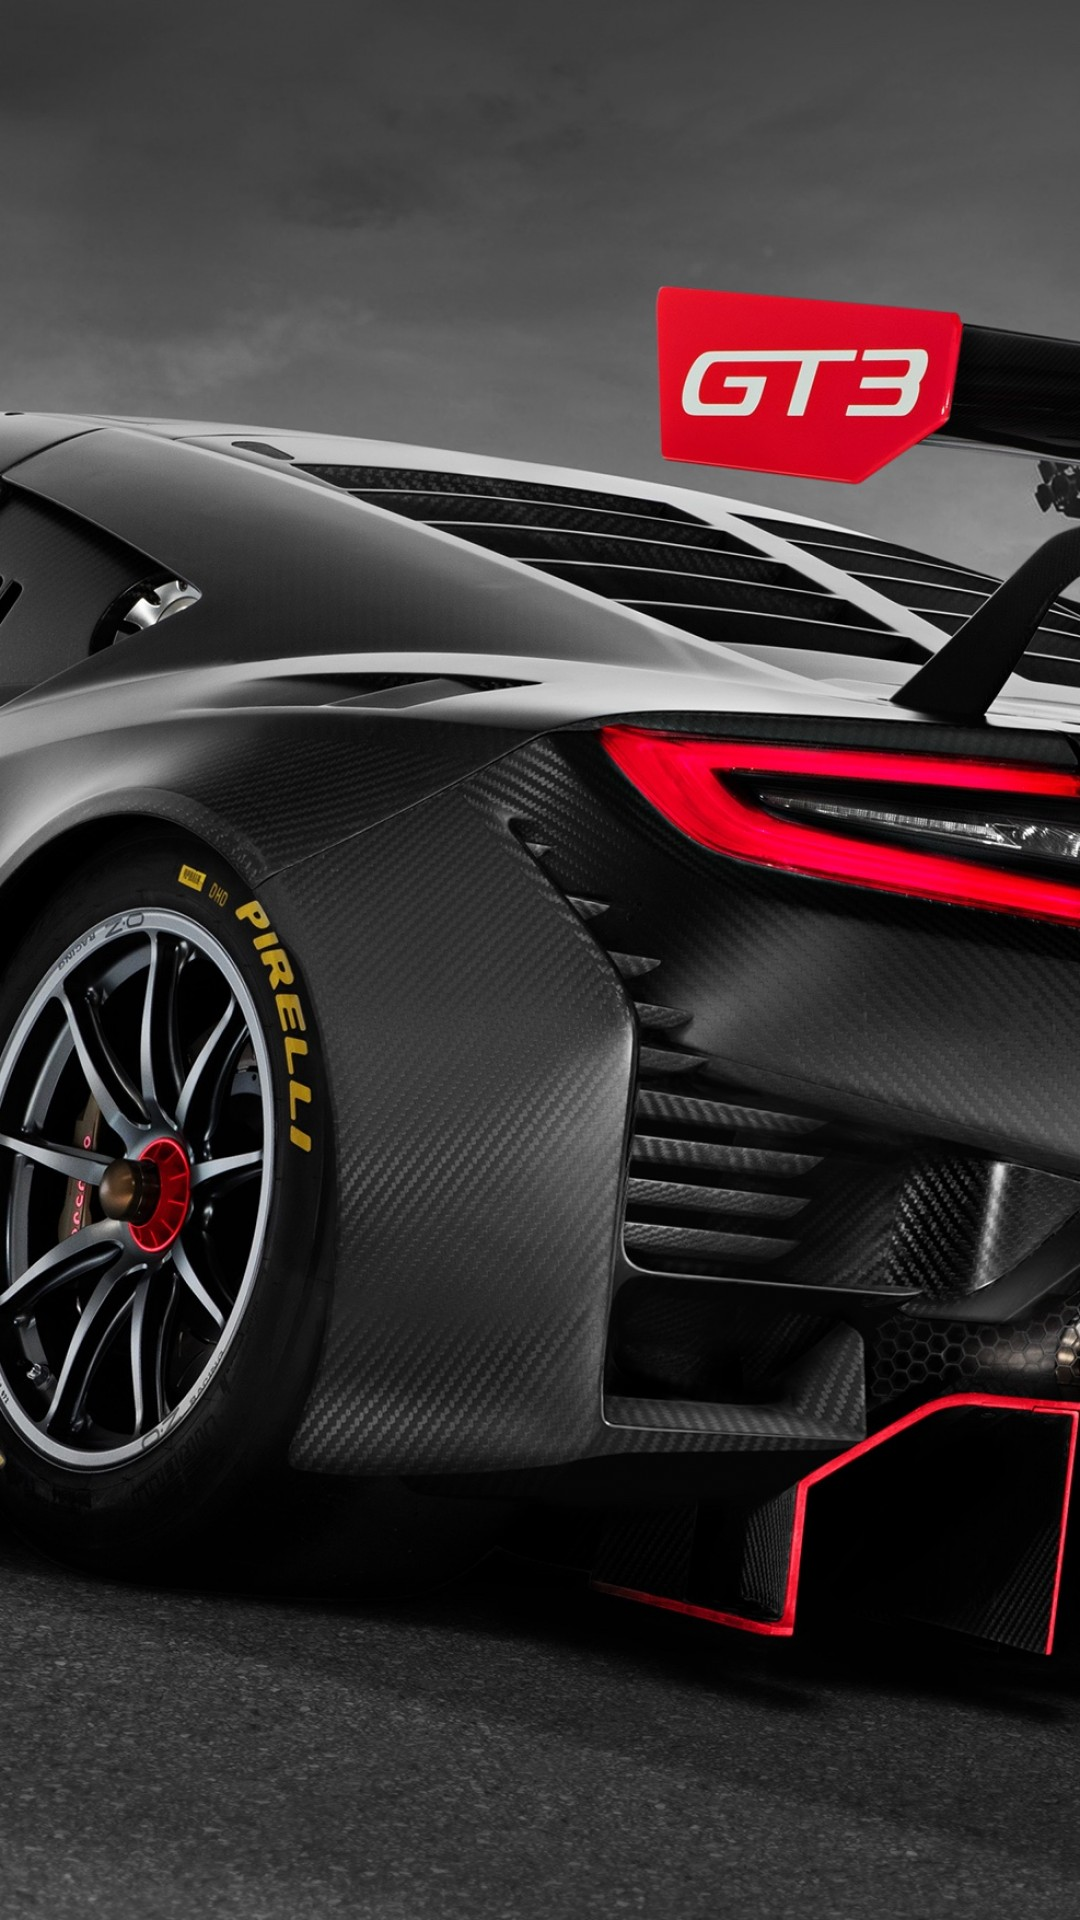 Wallpaper Acura NSX GT3 Evo, 2019 Cars, Supercar, 4K, Cars